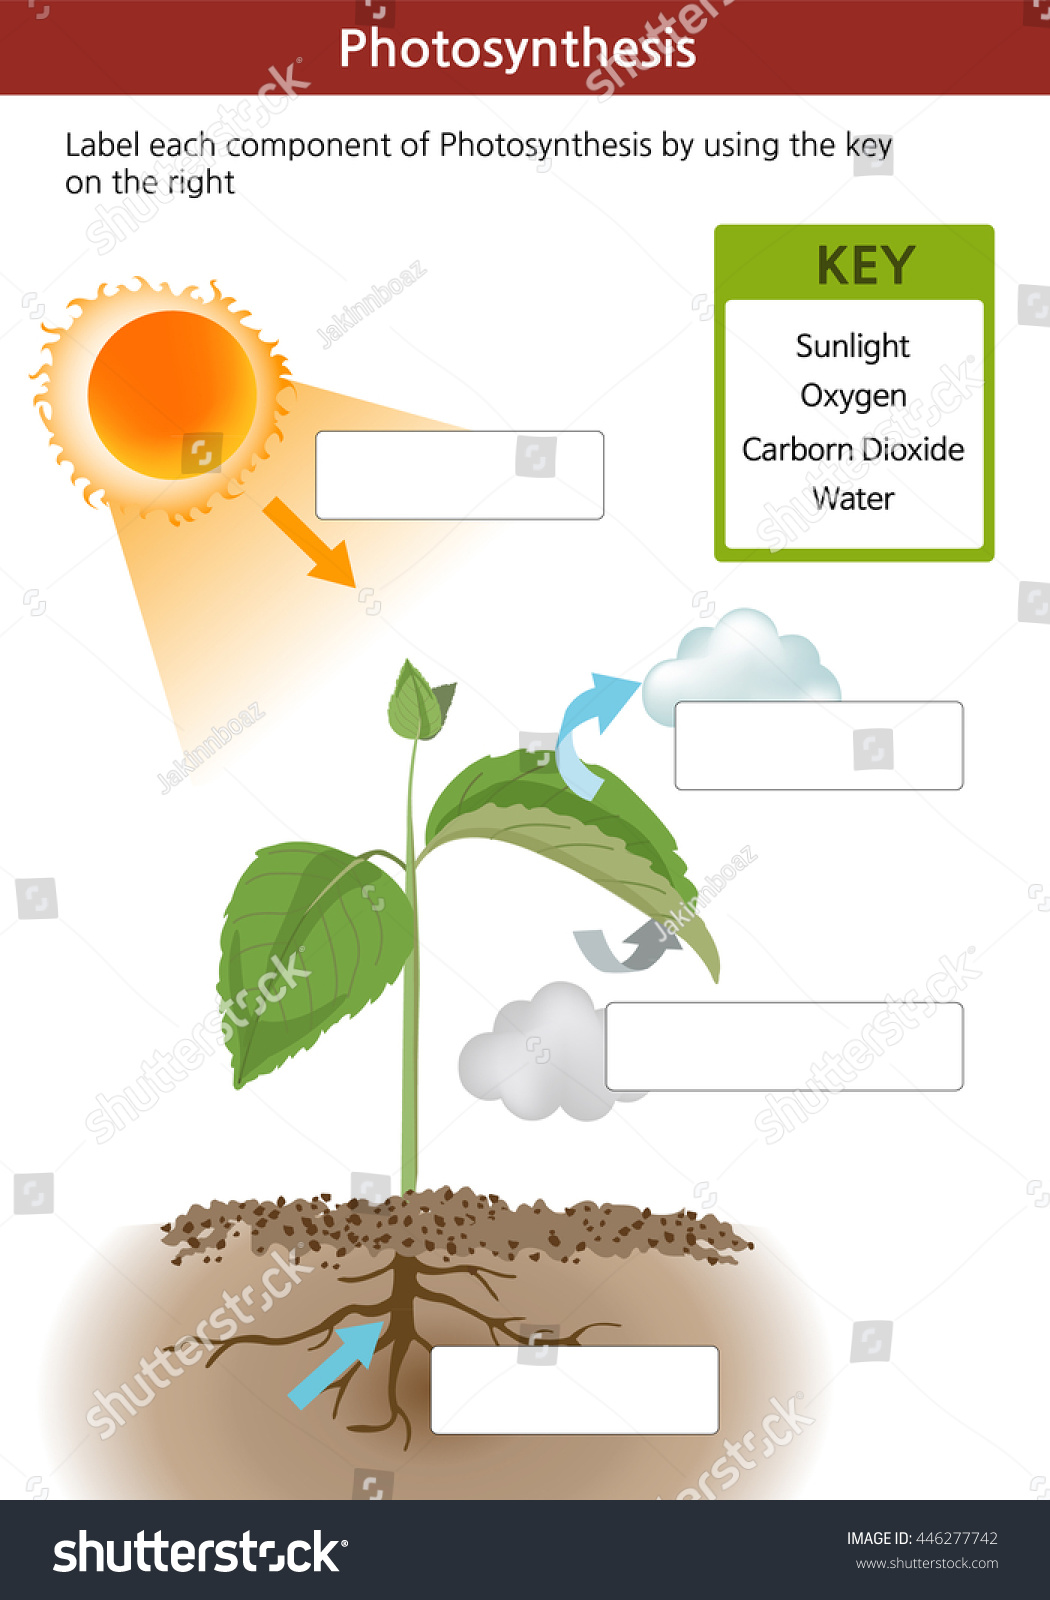 essay on photosynthesis process Custom photosynthesis essay writing service || photosynthesis essay samples, help introduction the process by which organisms such as some bacteria, green plants and some protistans convert sunlight's energy to produce cellular sugar is known as photosynthesis.